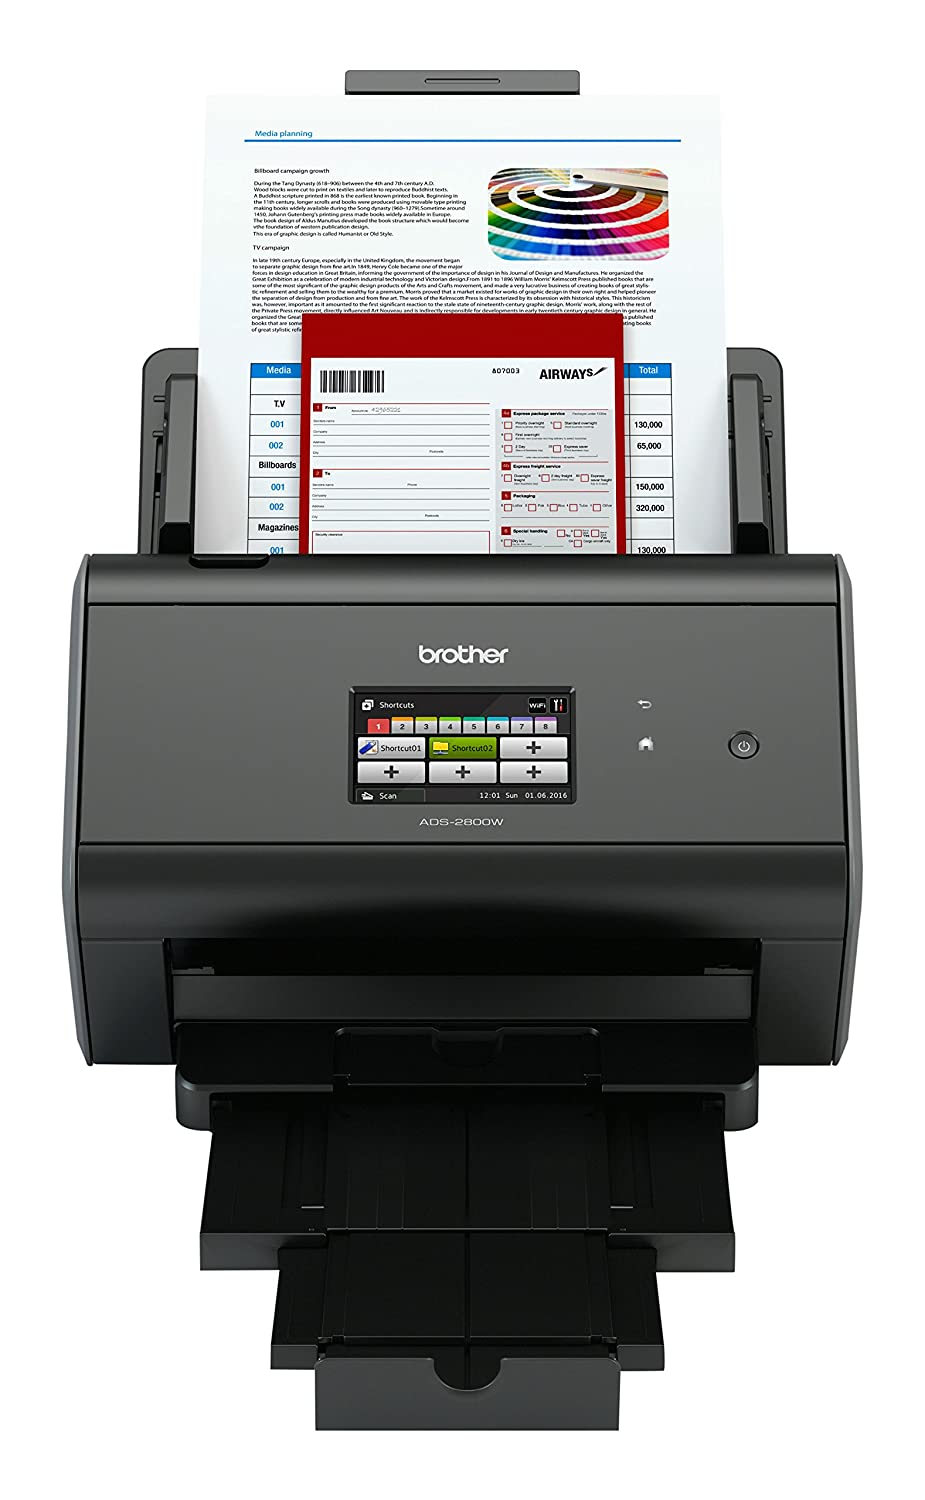 BROTHER ADS-2800W PRINTER DRIVERS